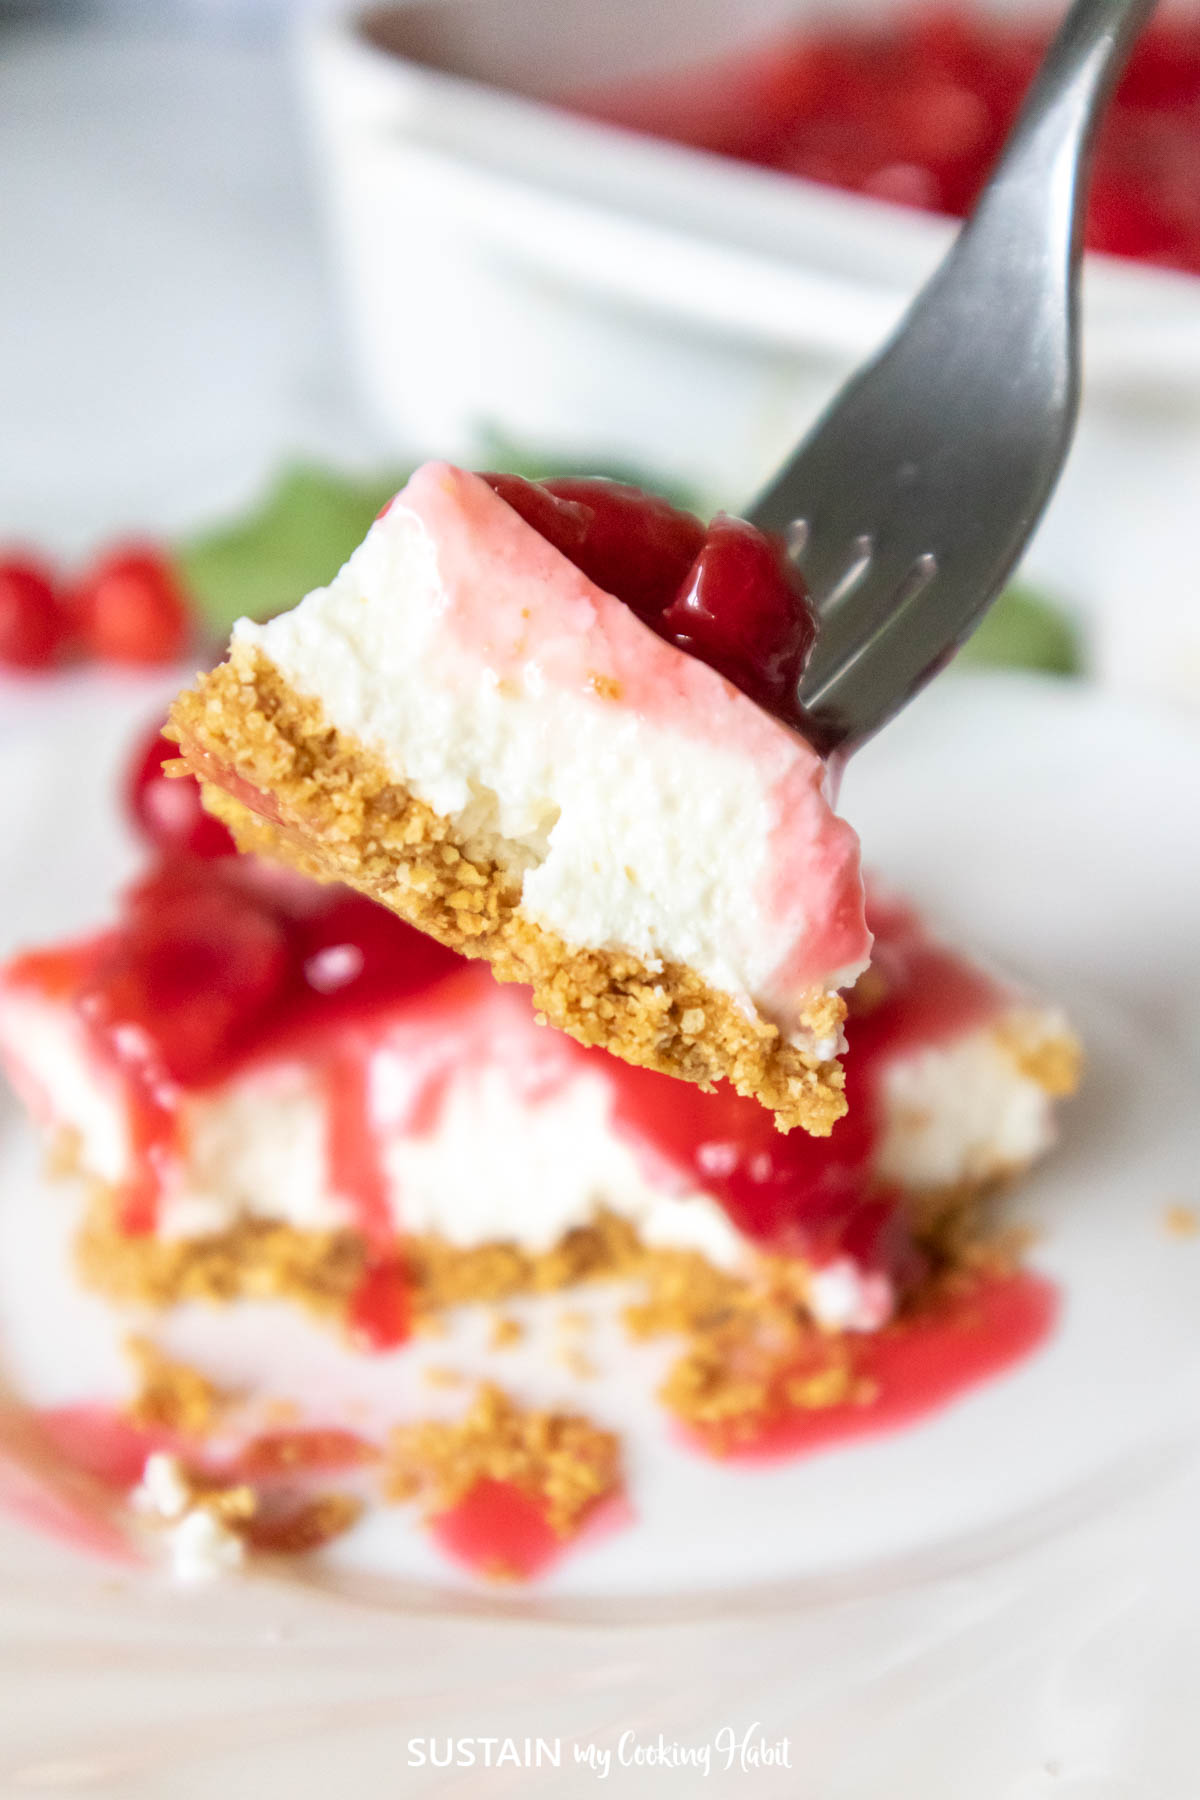 forkful of sour cherry cheesecake